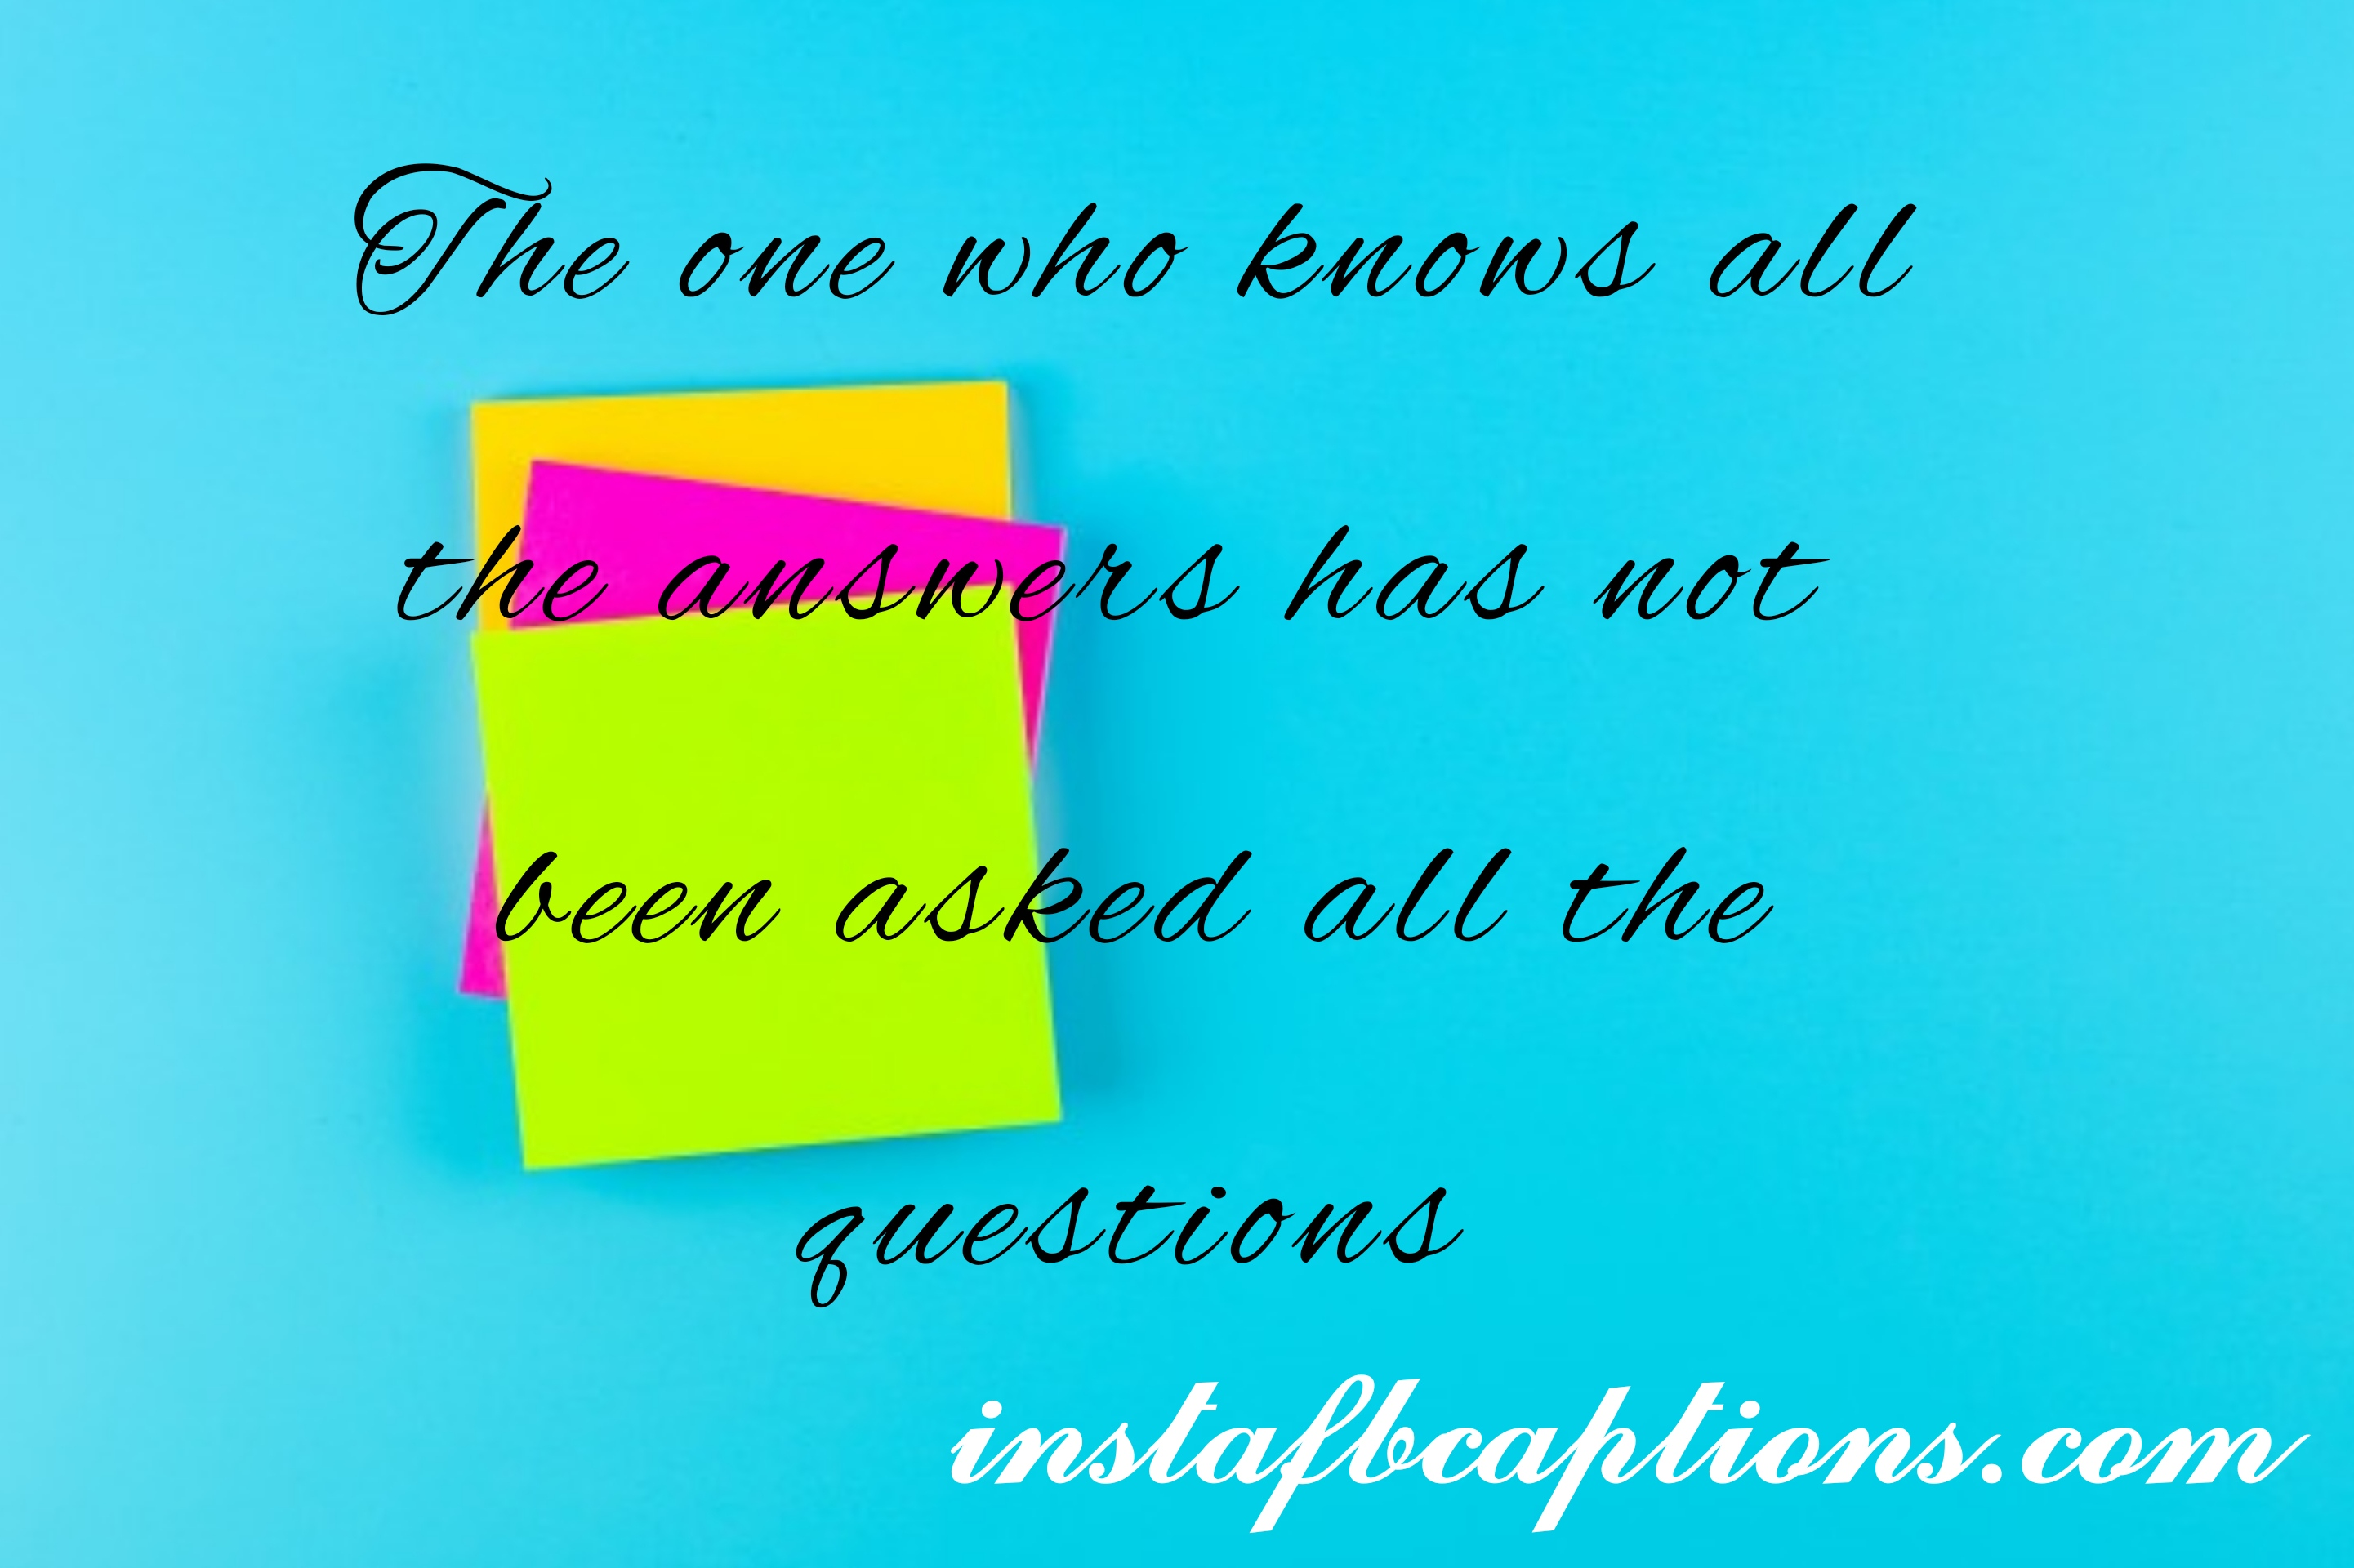 Best Questioning Quotes For Instagram  - Best Questioning Quotes for Instagram 1 - 100+ Short QUESTION Instagram captions 2021